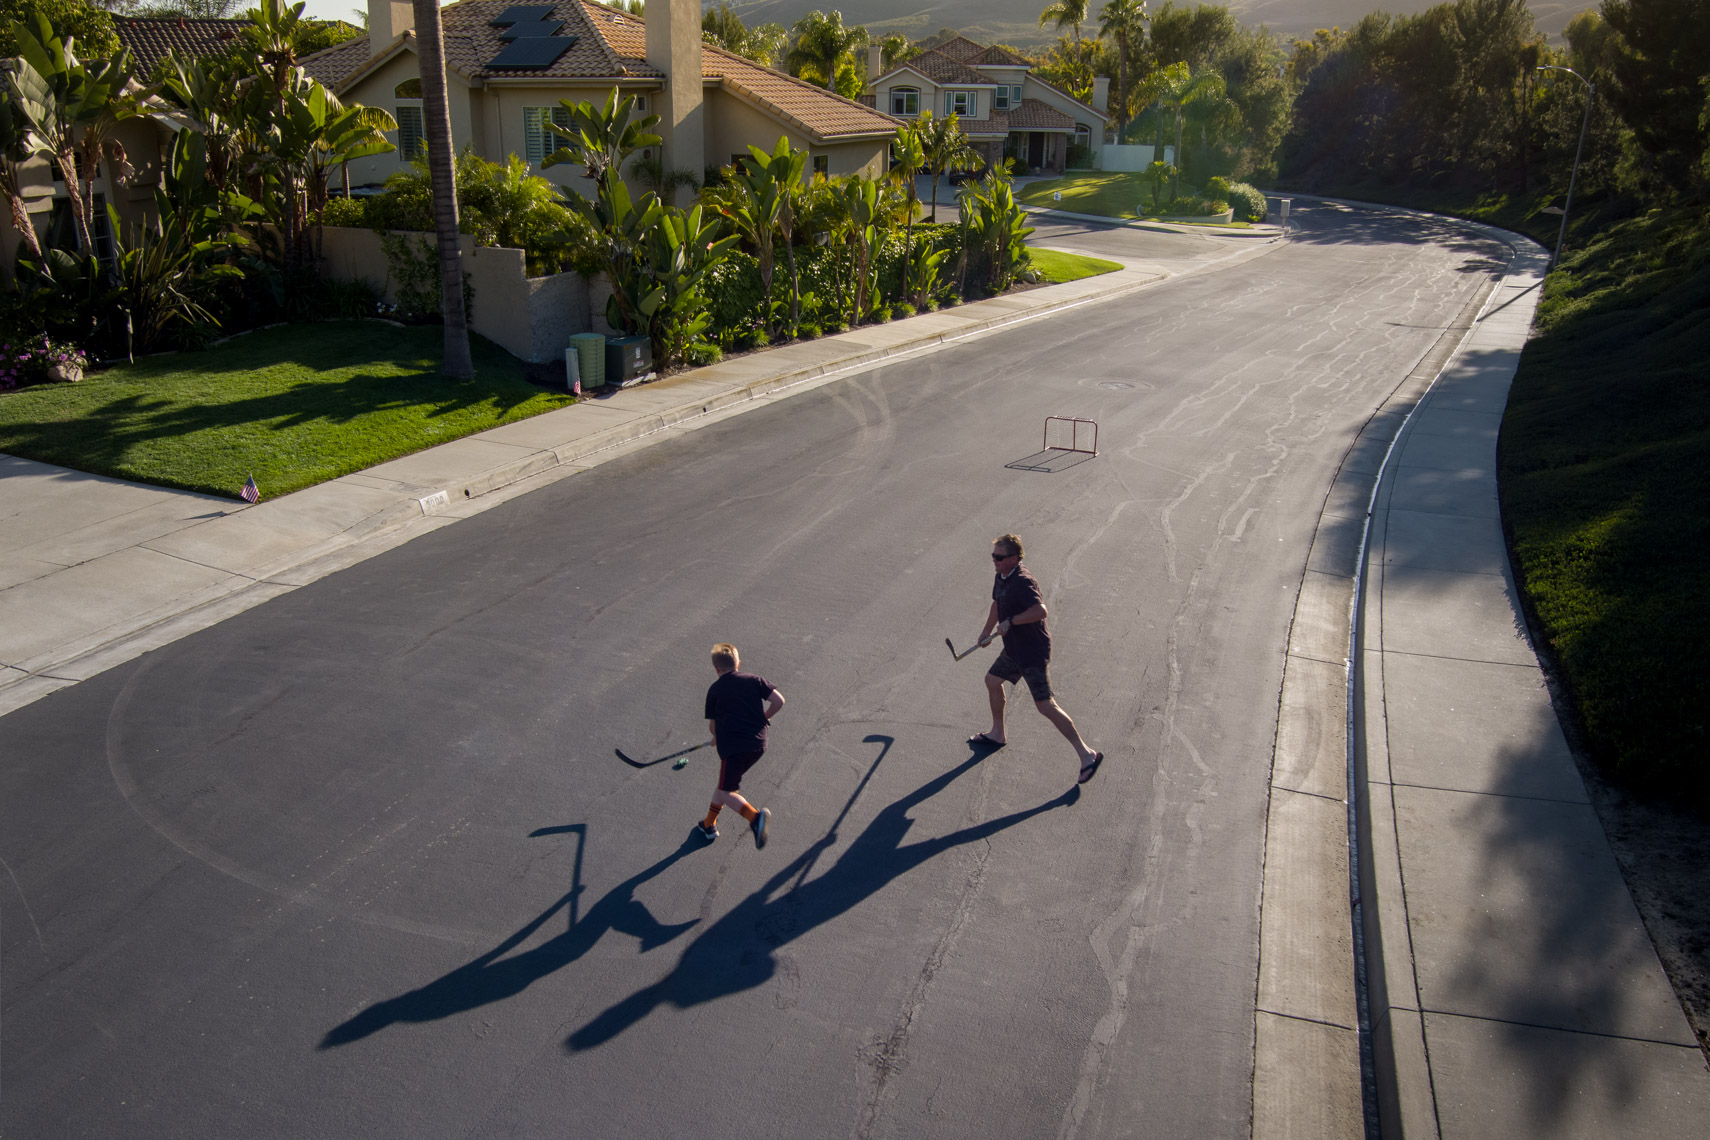 Street hockey father son